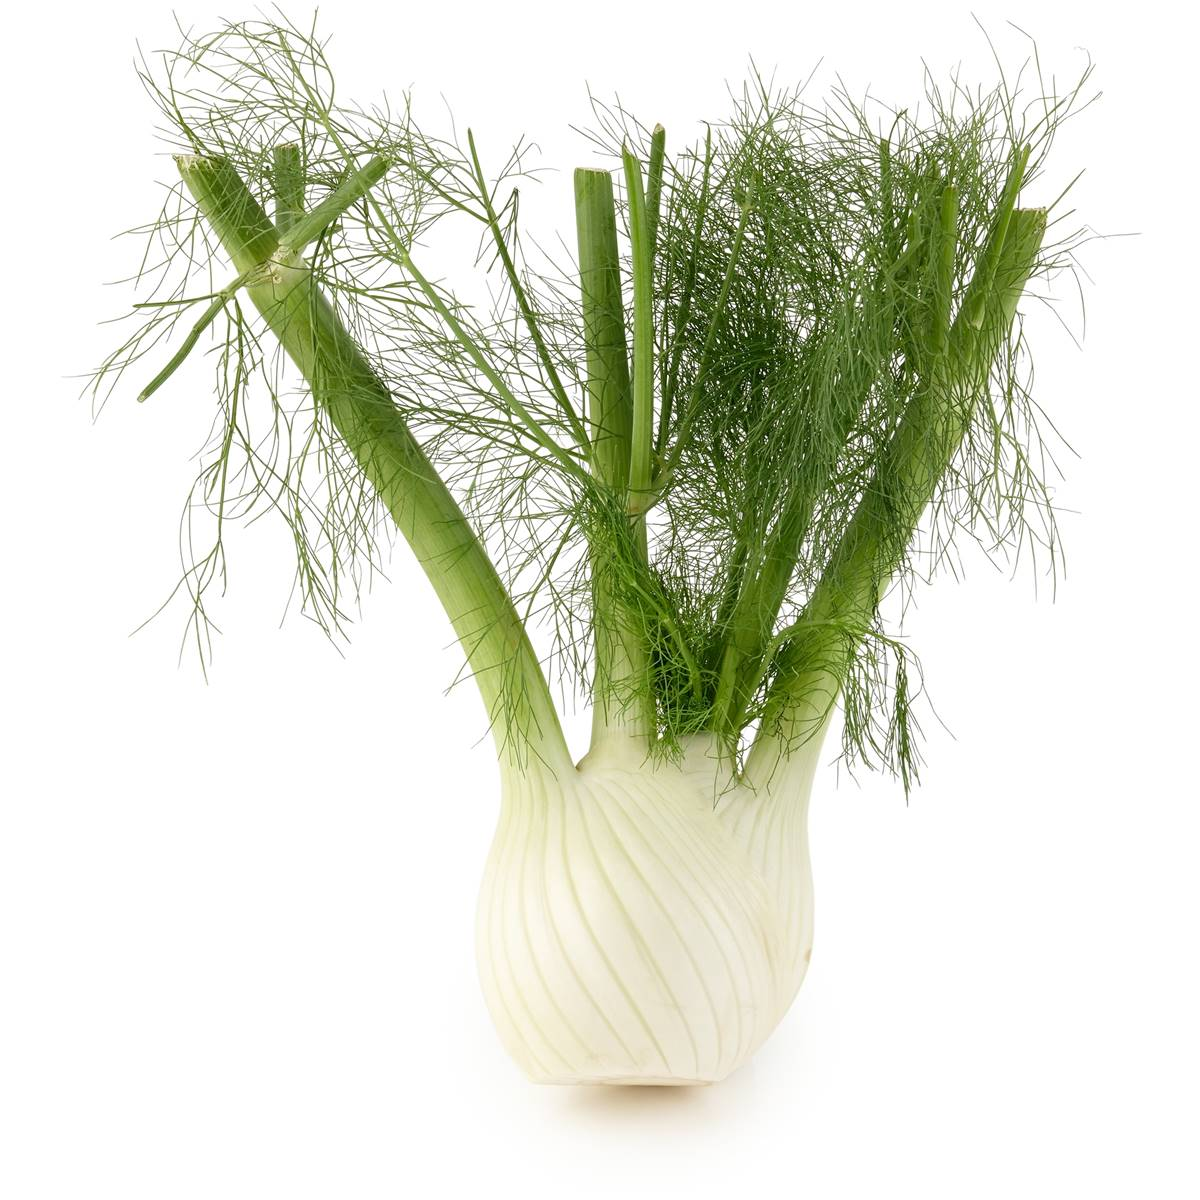 Fennel - Looks Like a Man Sucking a Cock